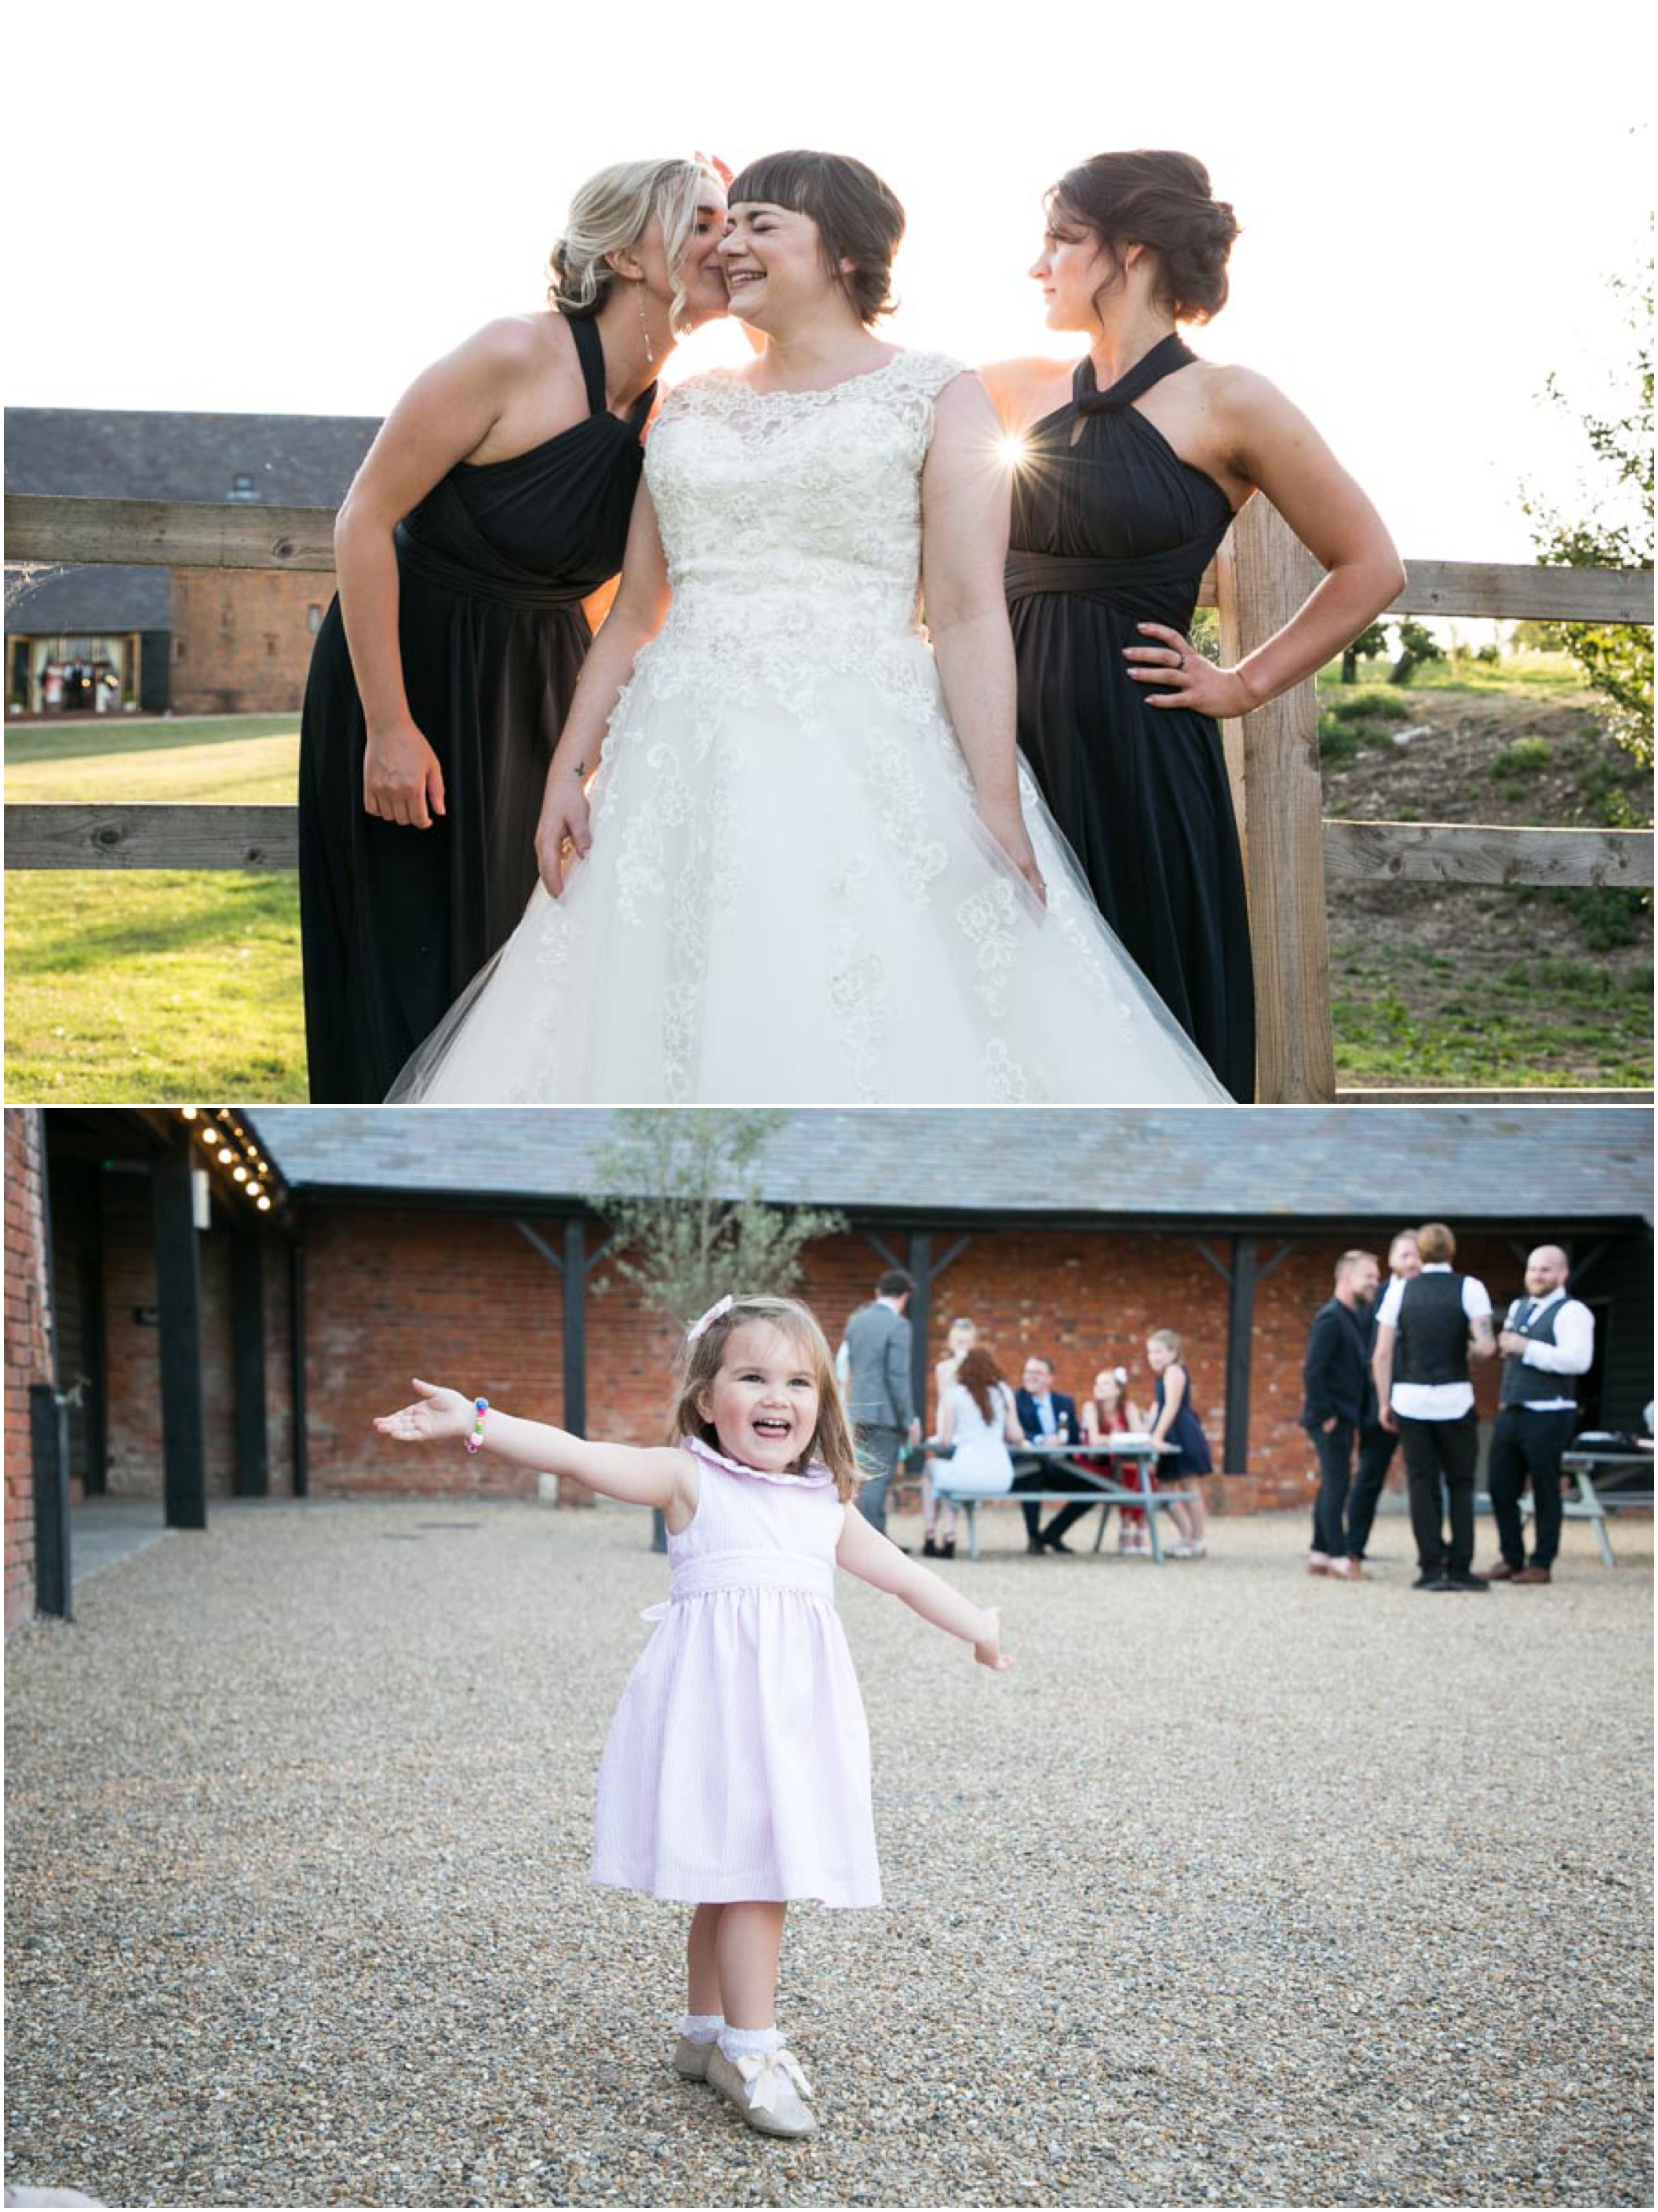 bridesmaids with bride in golden hour light and small girl dancing